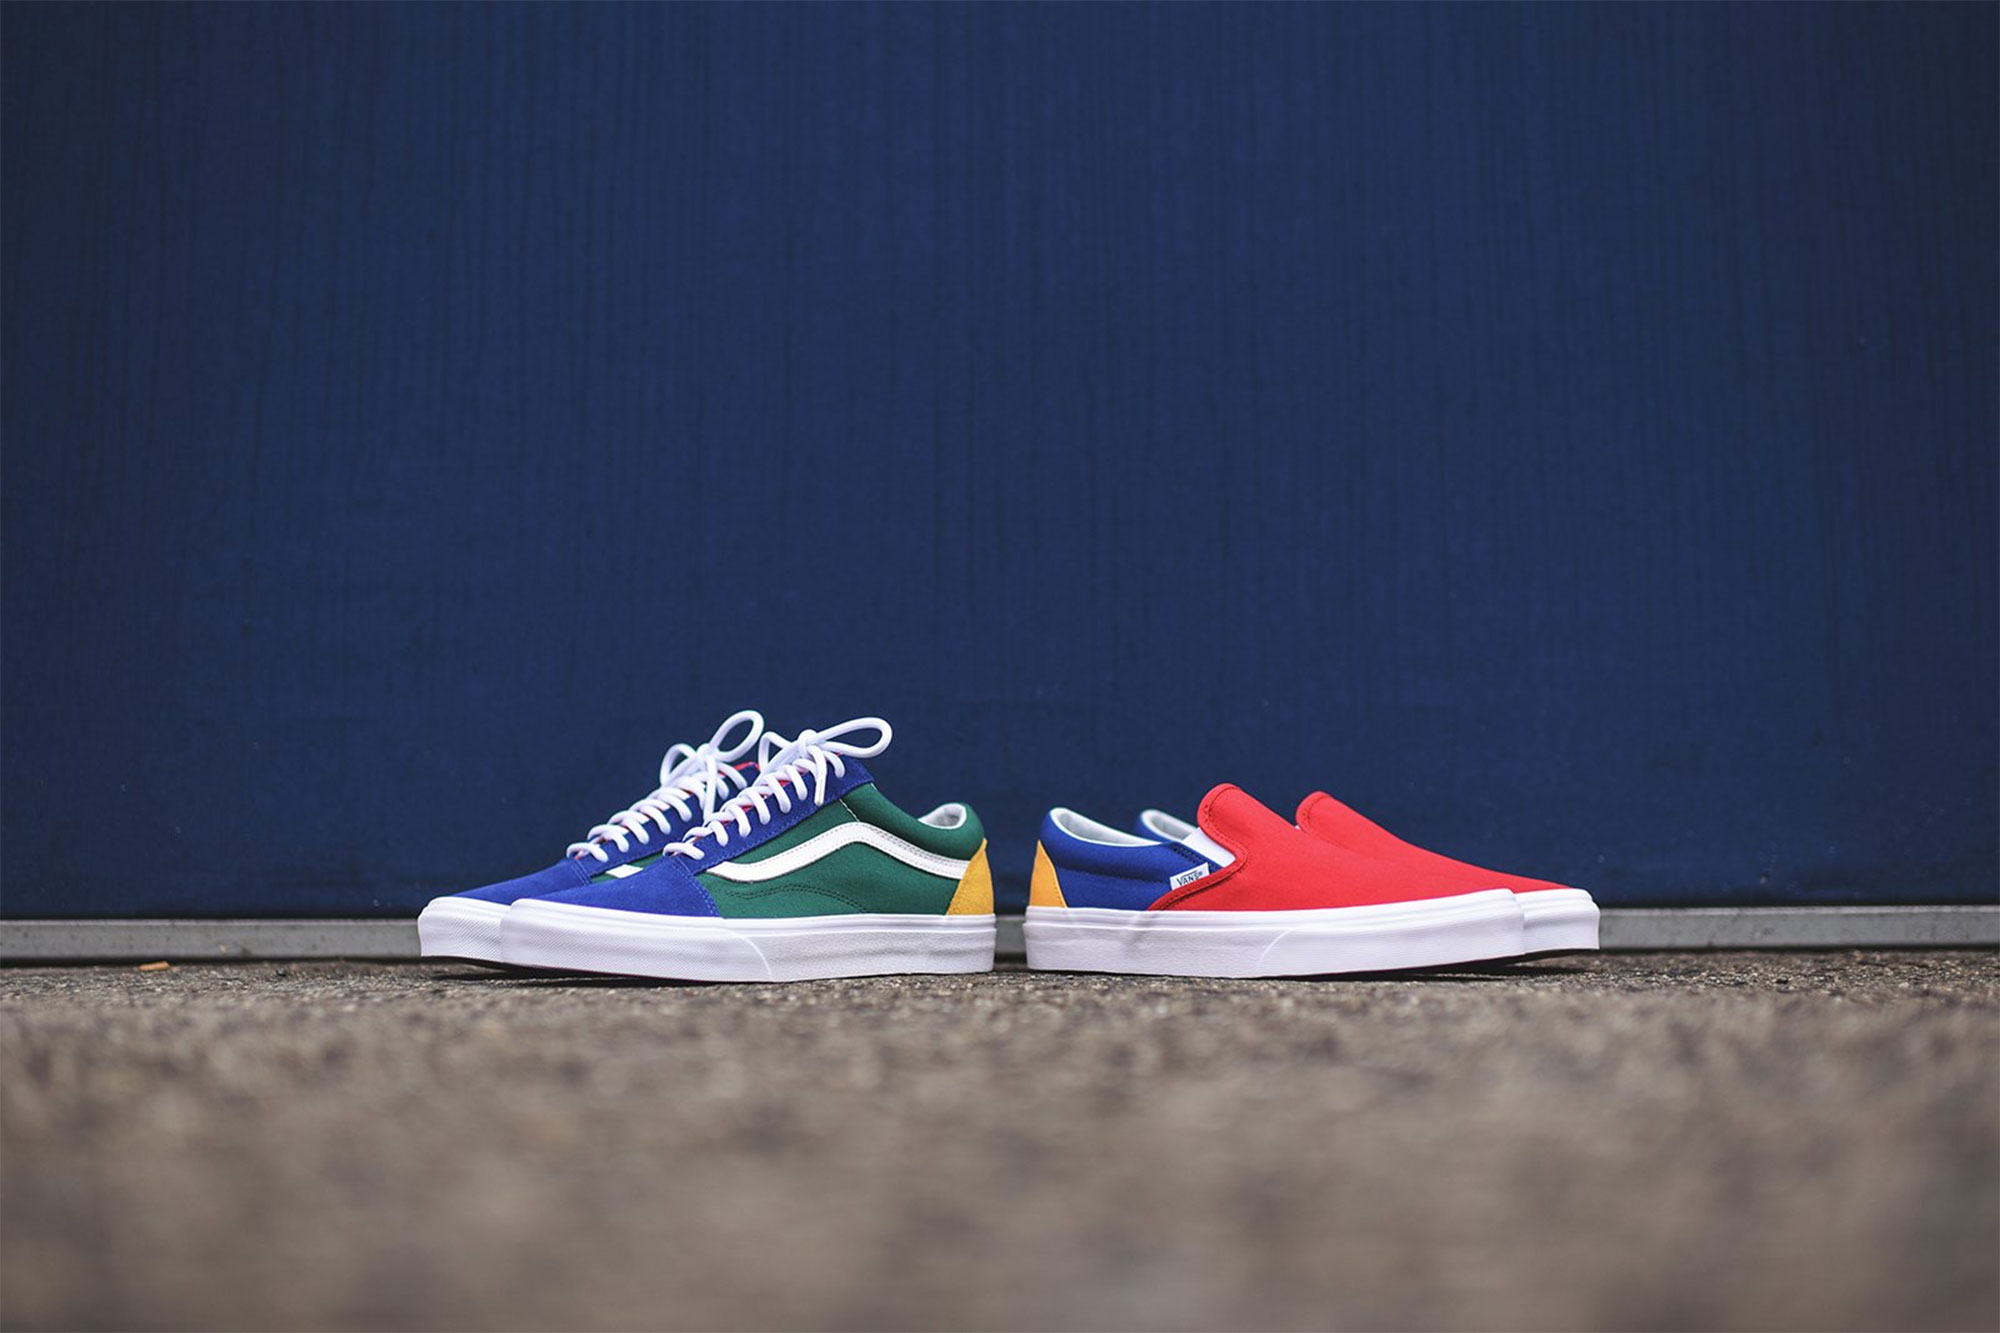 The Vans Yacht Club Pack